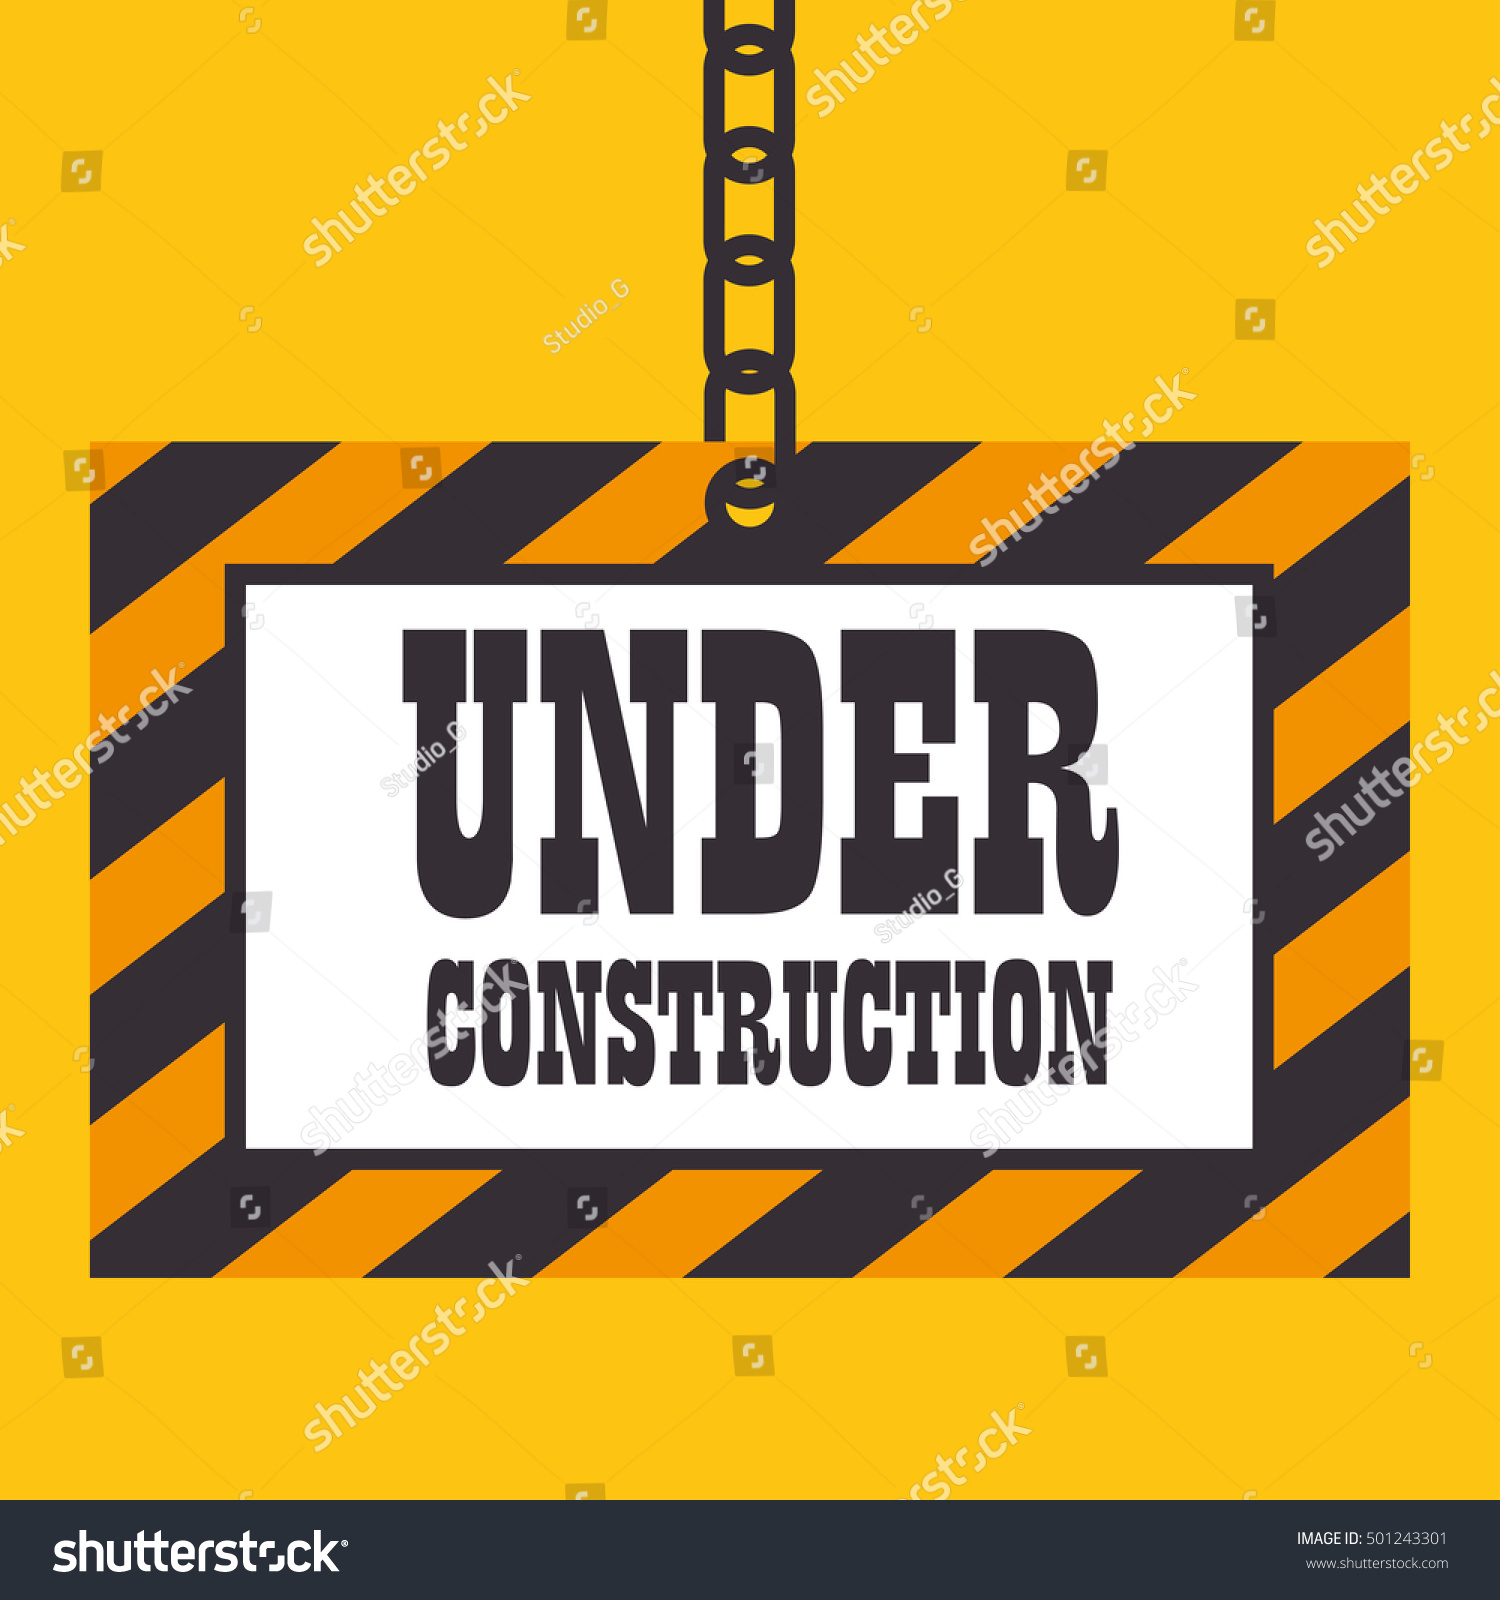 under construction template icon stock vector 501243301 shutterstock